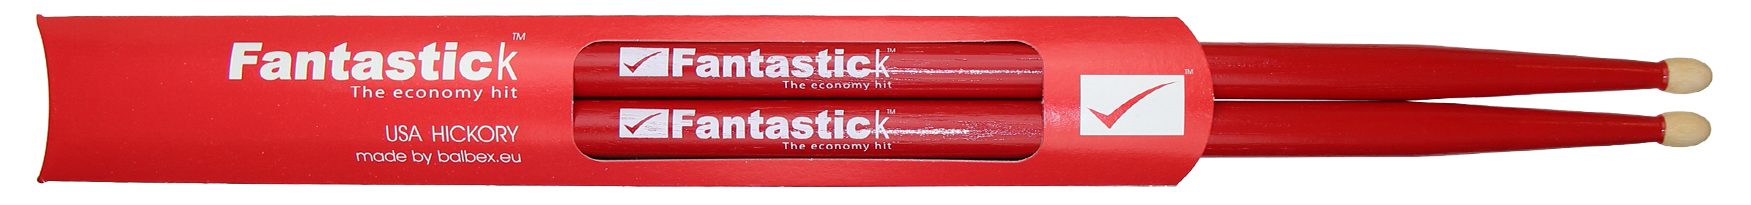 cover-fantastick-5A-red-2